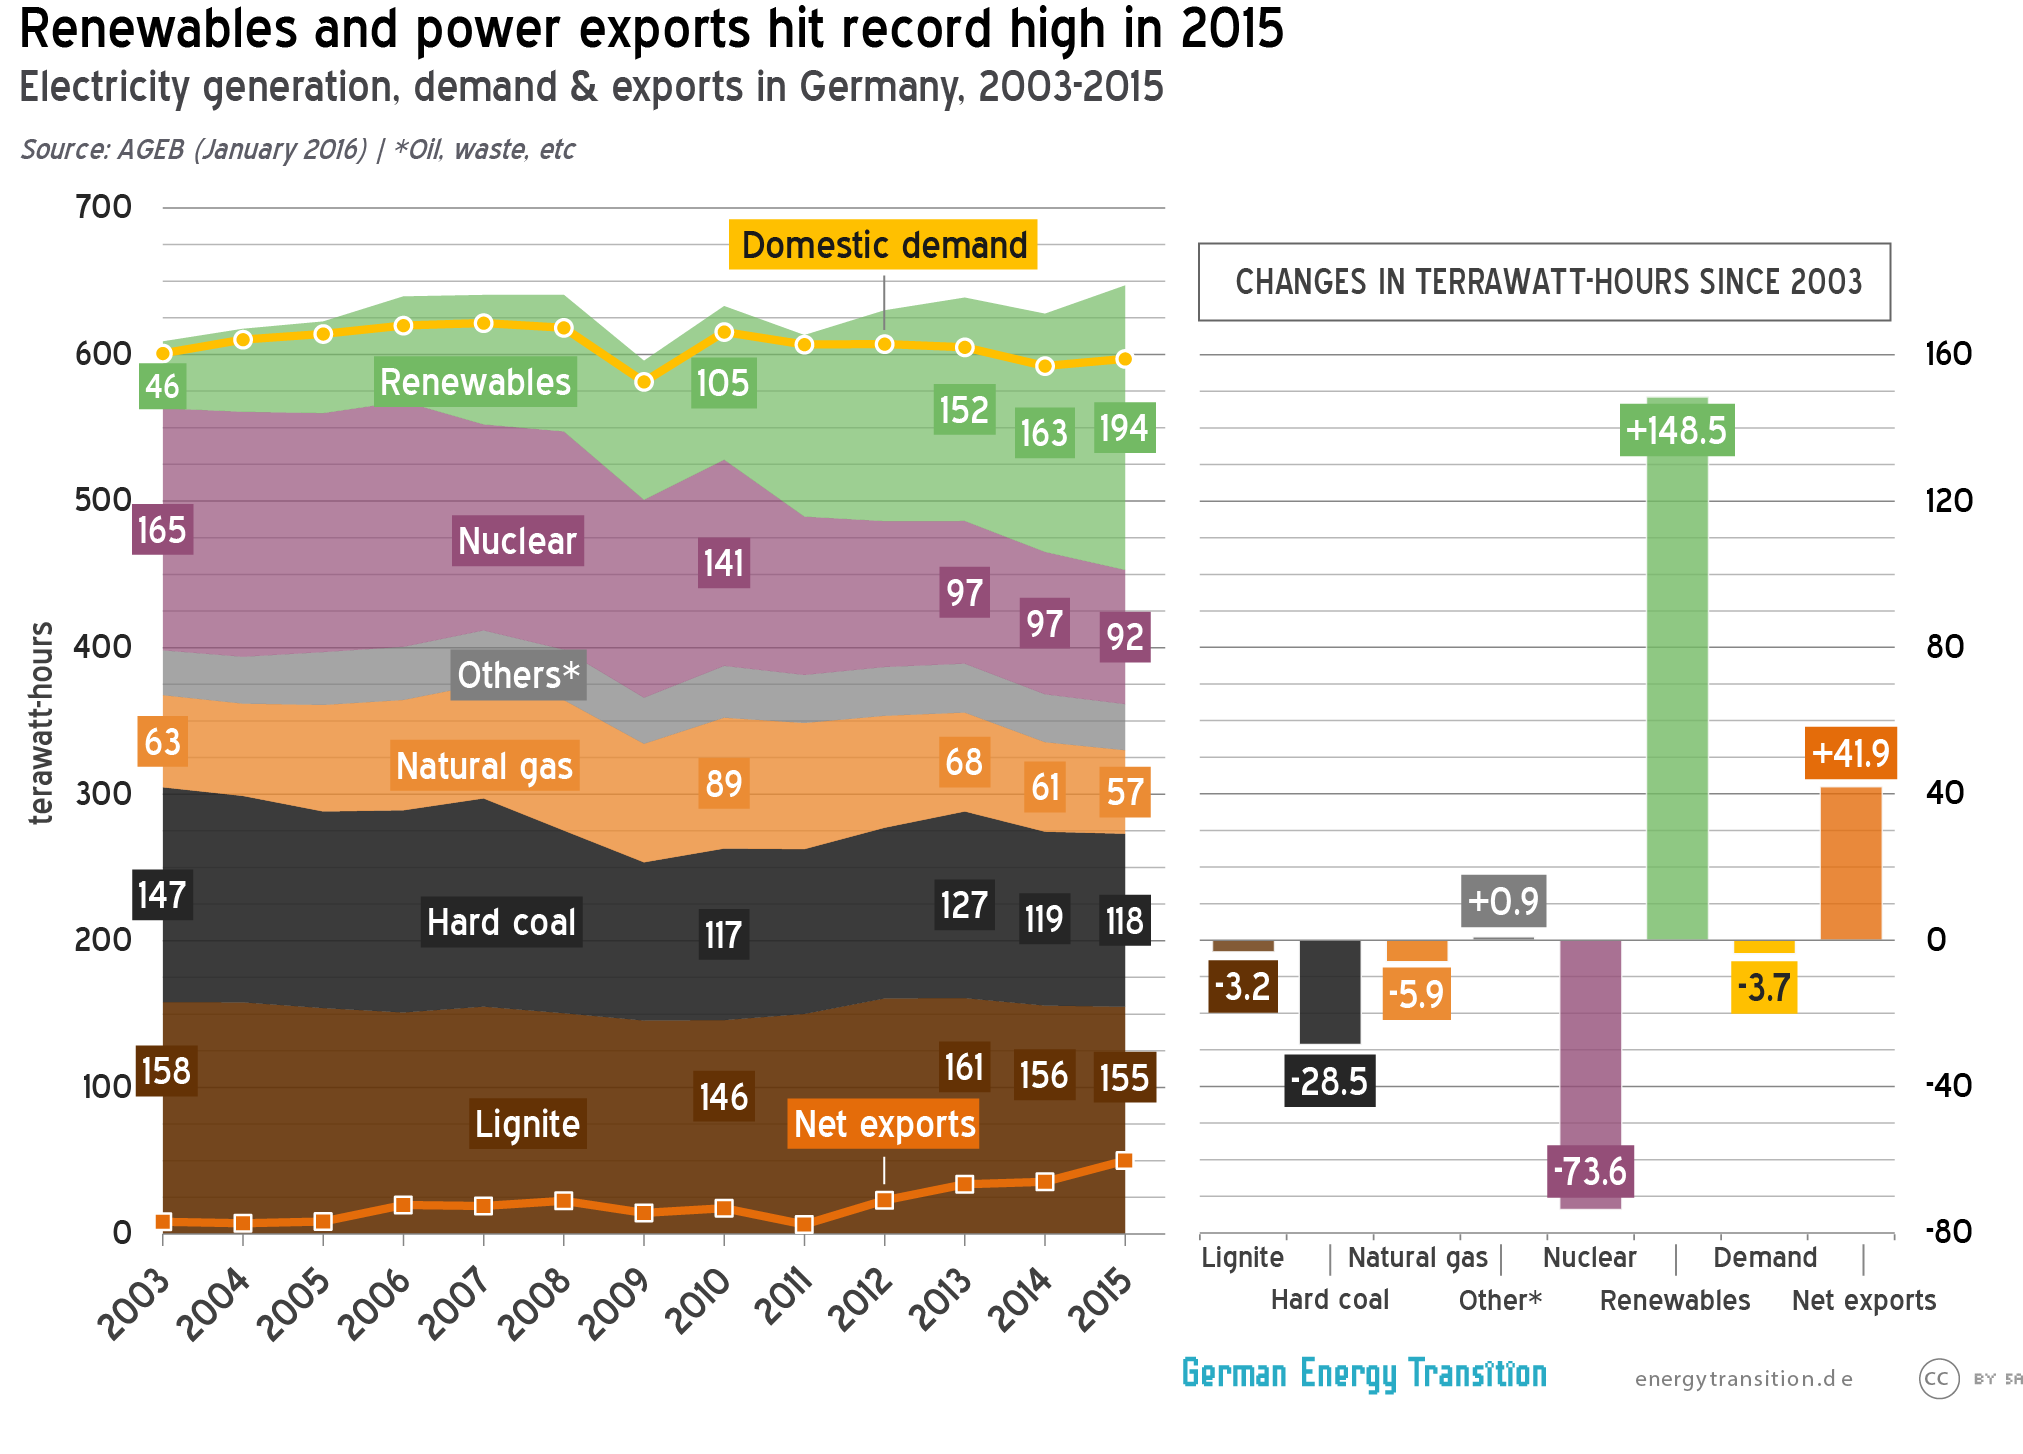 Renewables and power exports hit record high in 2015